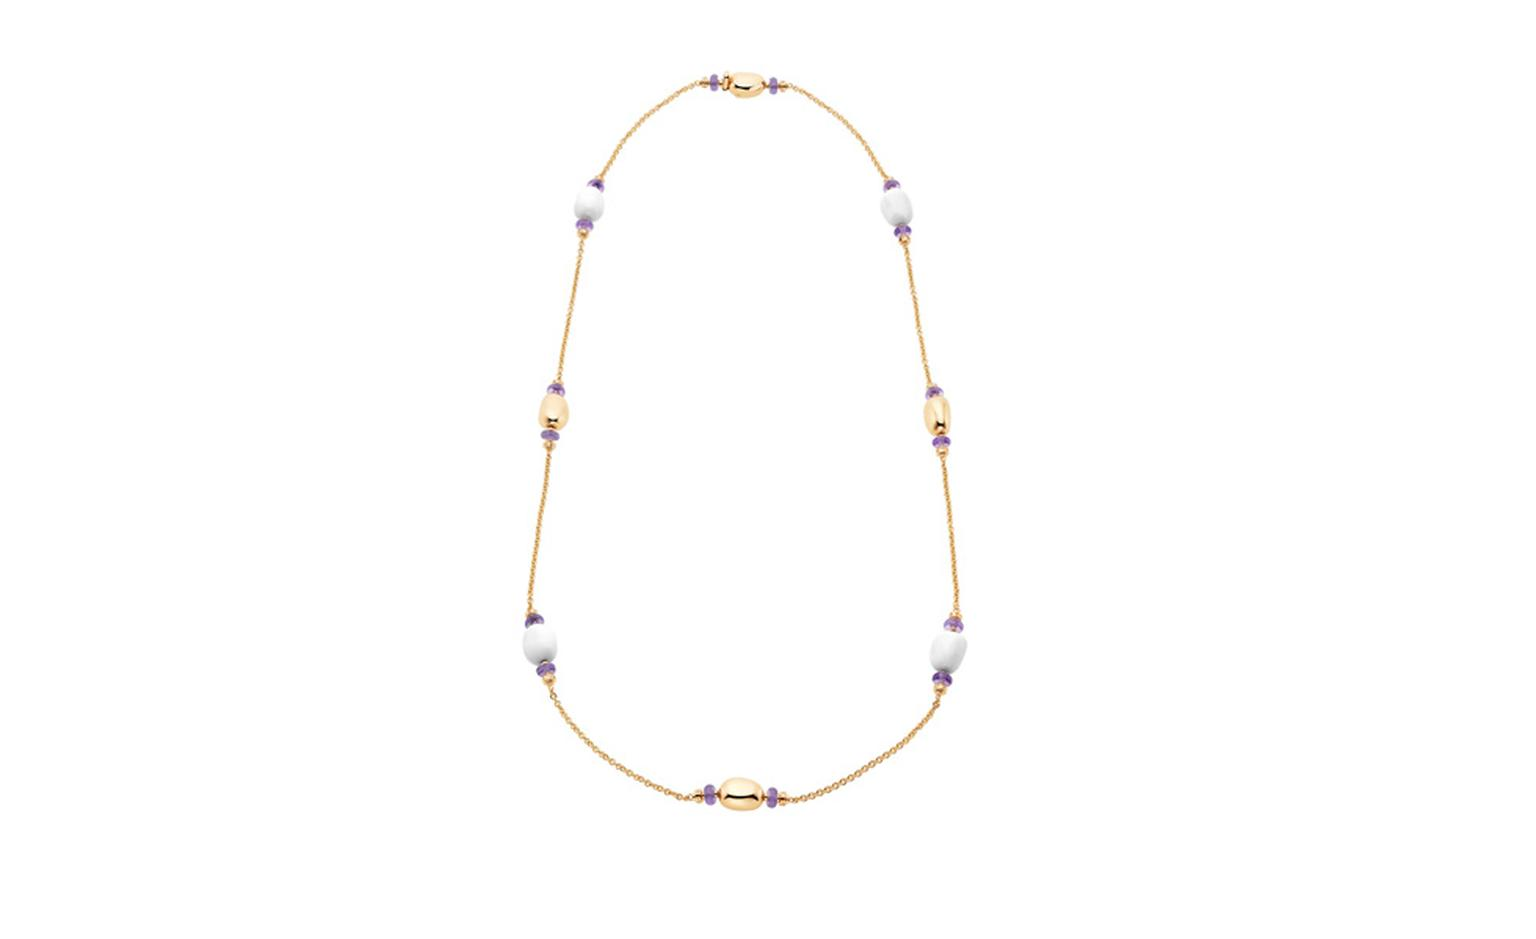 Bulgari. Mediterranean Eden pink gold sautoir necklace mounting white ceramic and gold nuggets, and amethyst beads. Price from £9.700,00